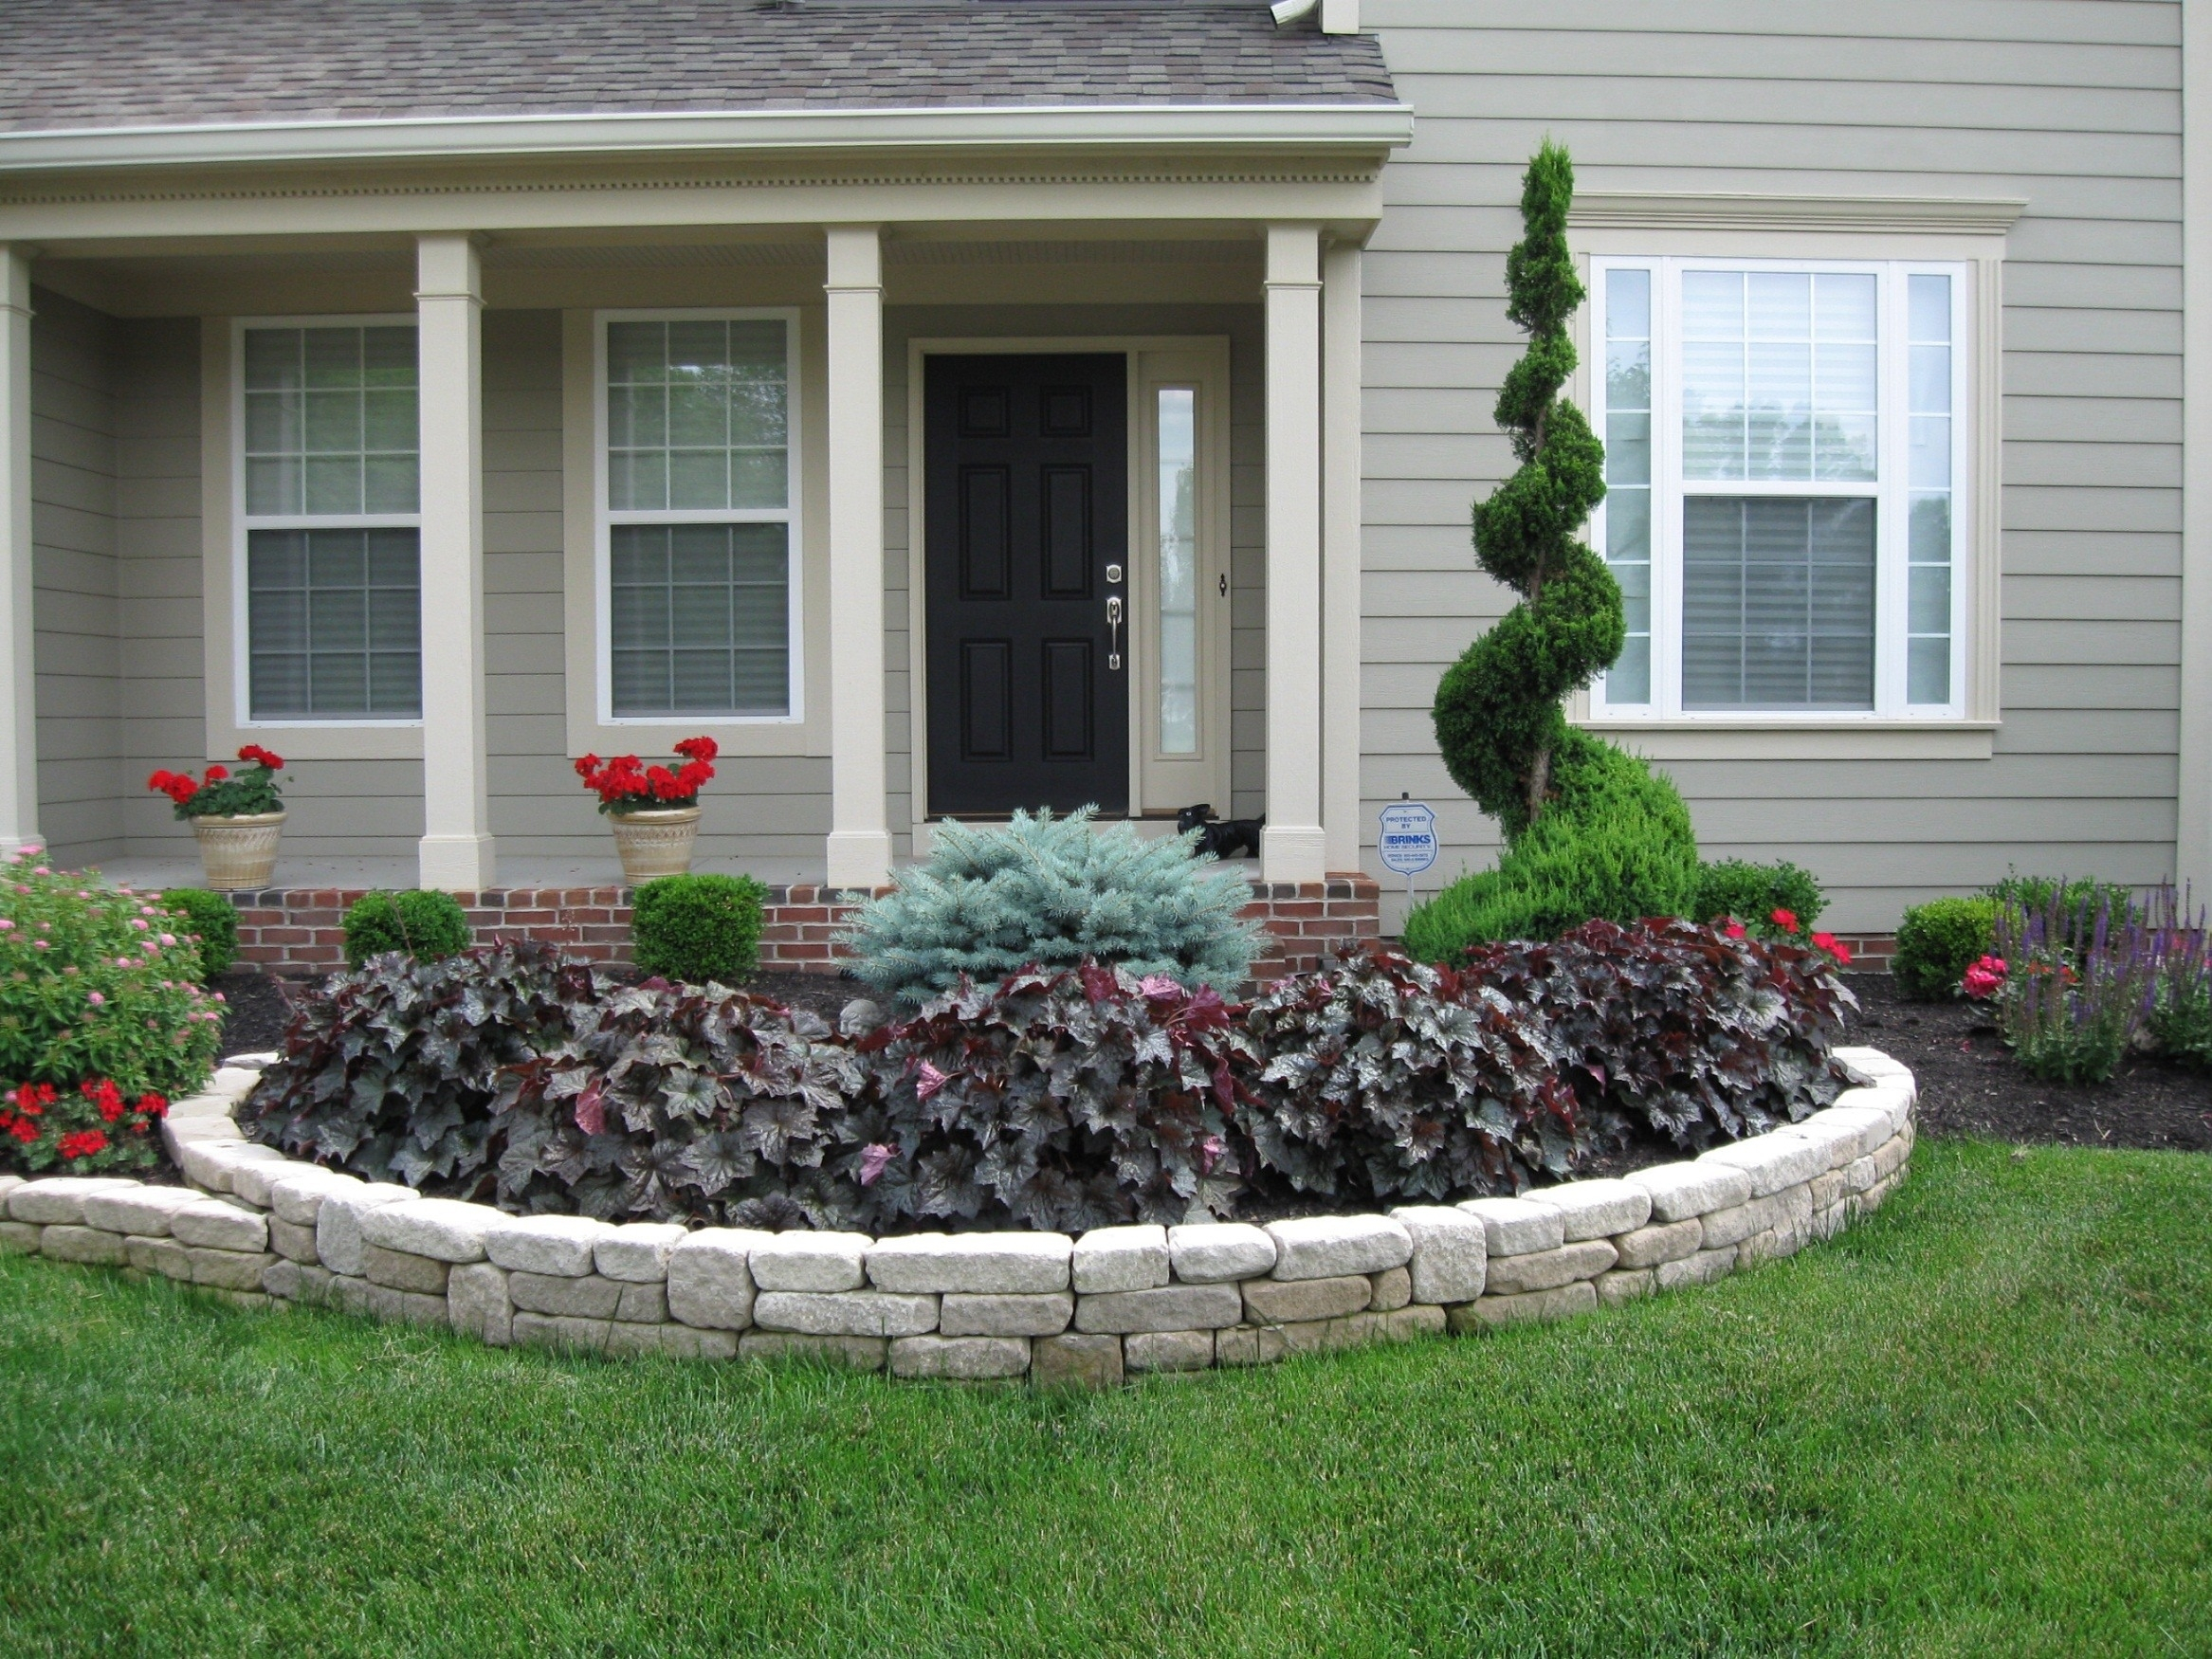 10 Lovely Flower Beds Ideas Front Yard front yard flower bed landscaping ideas exterior design ideas